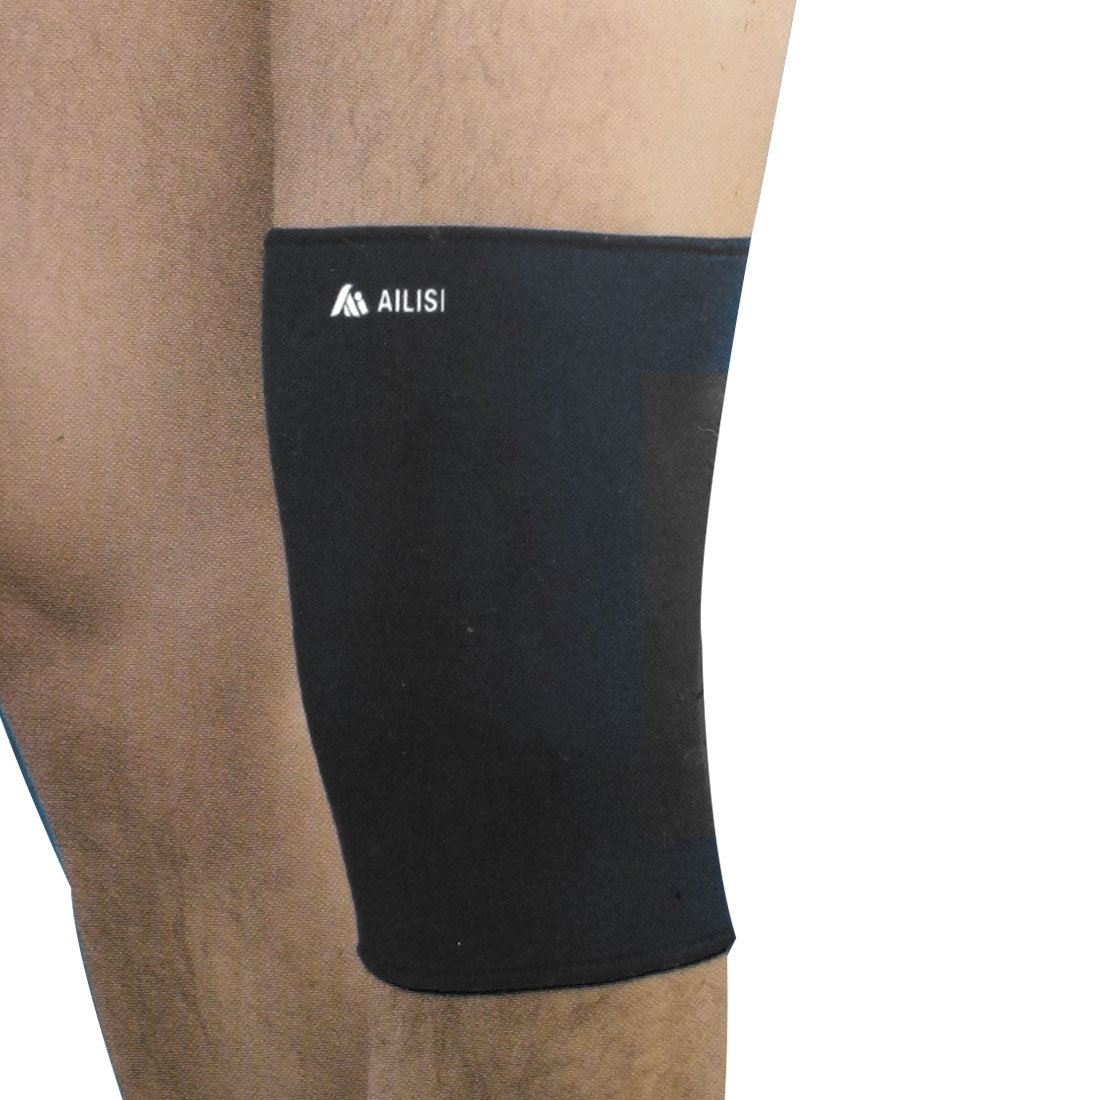 Black Elastic Sleeve Knee Warmer Breathable Support Brace for Men